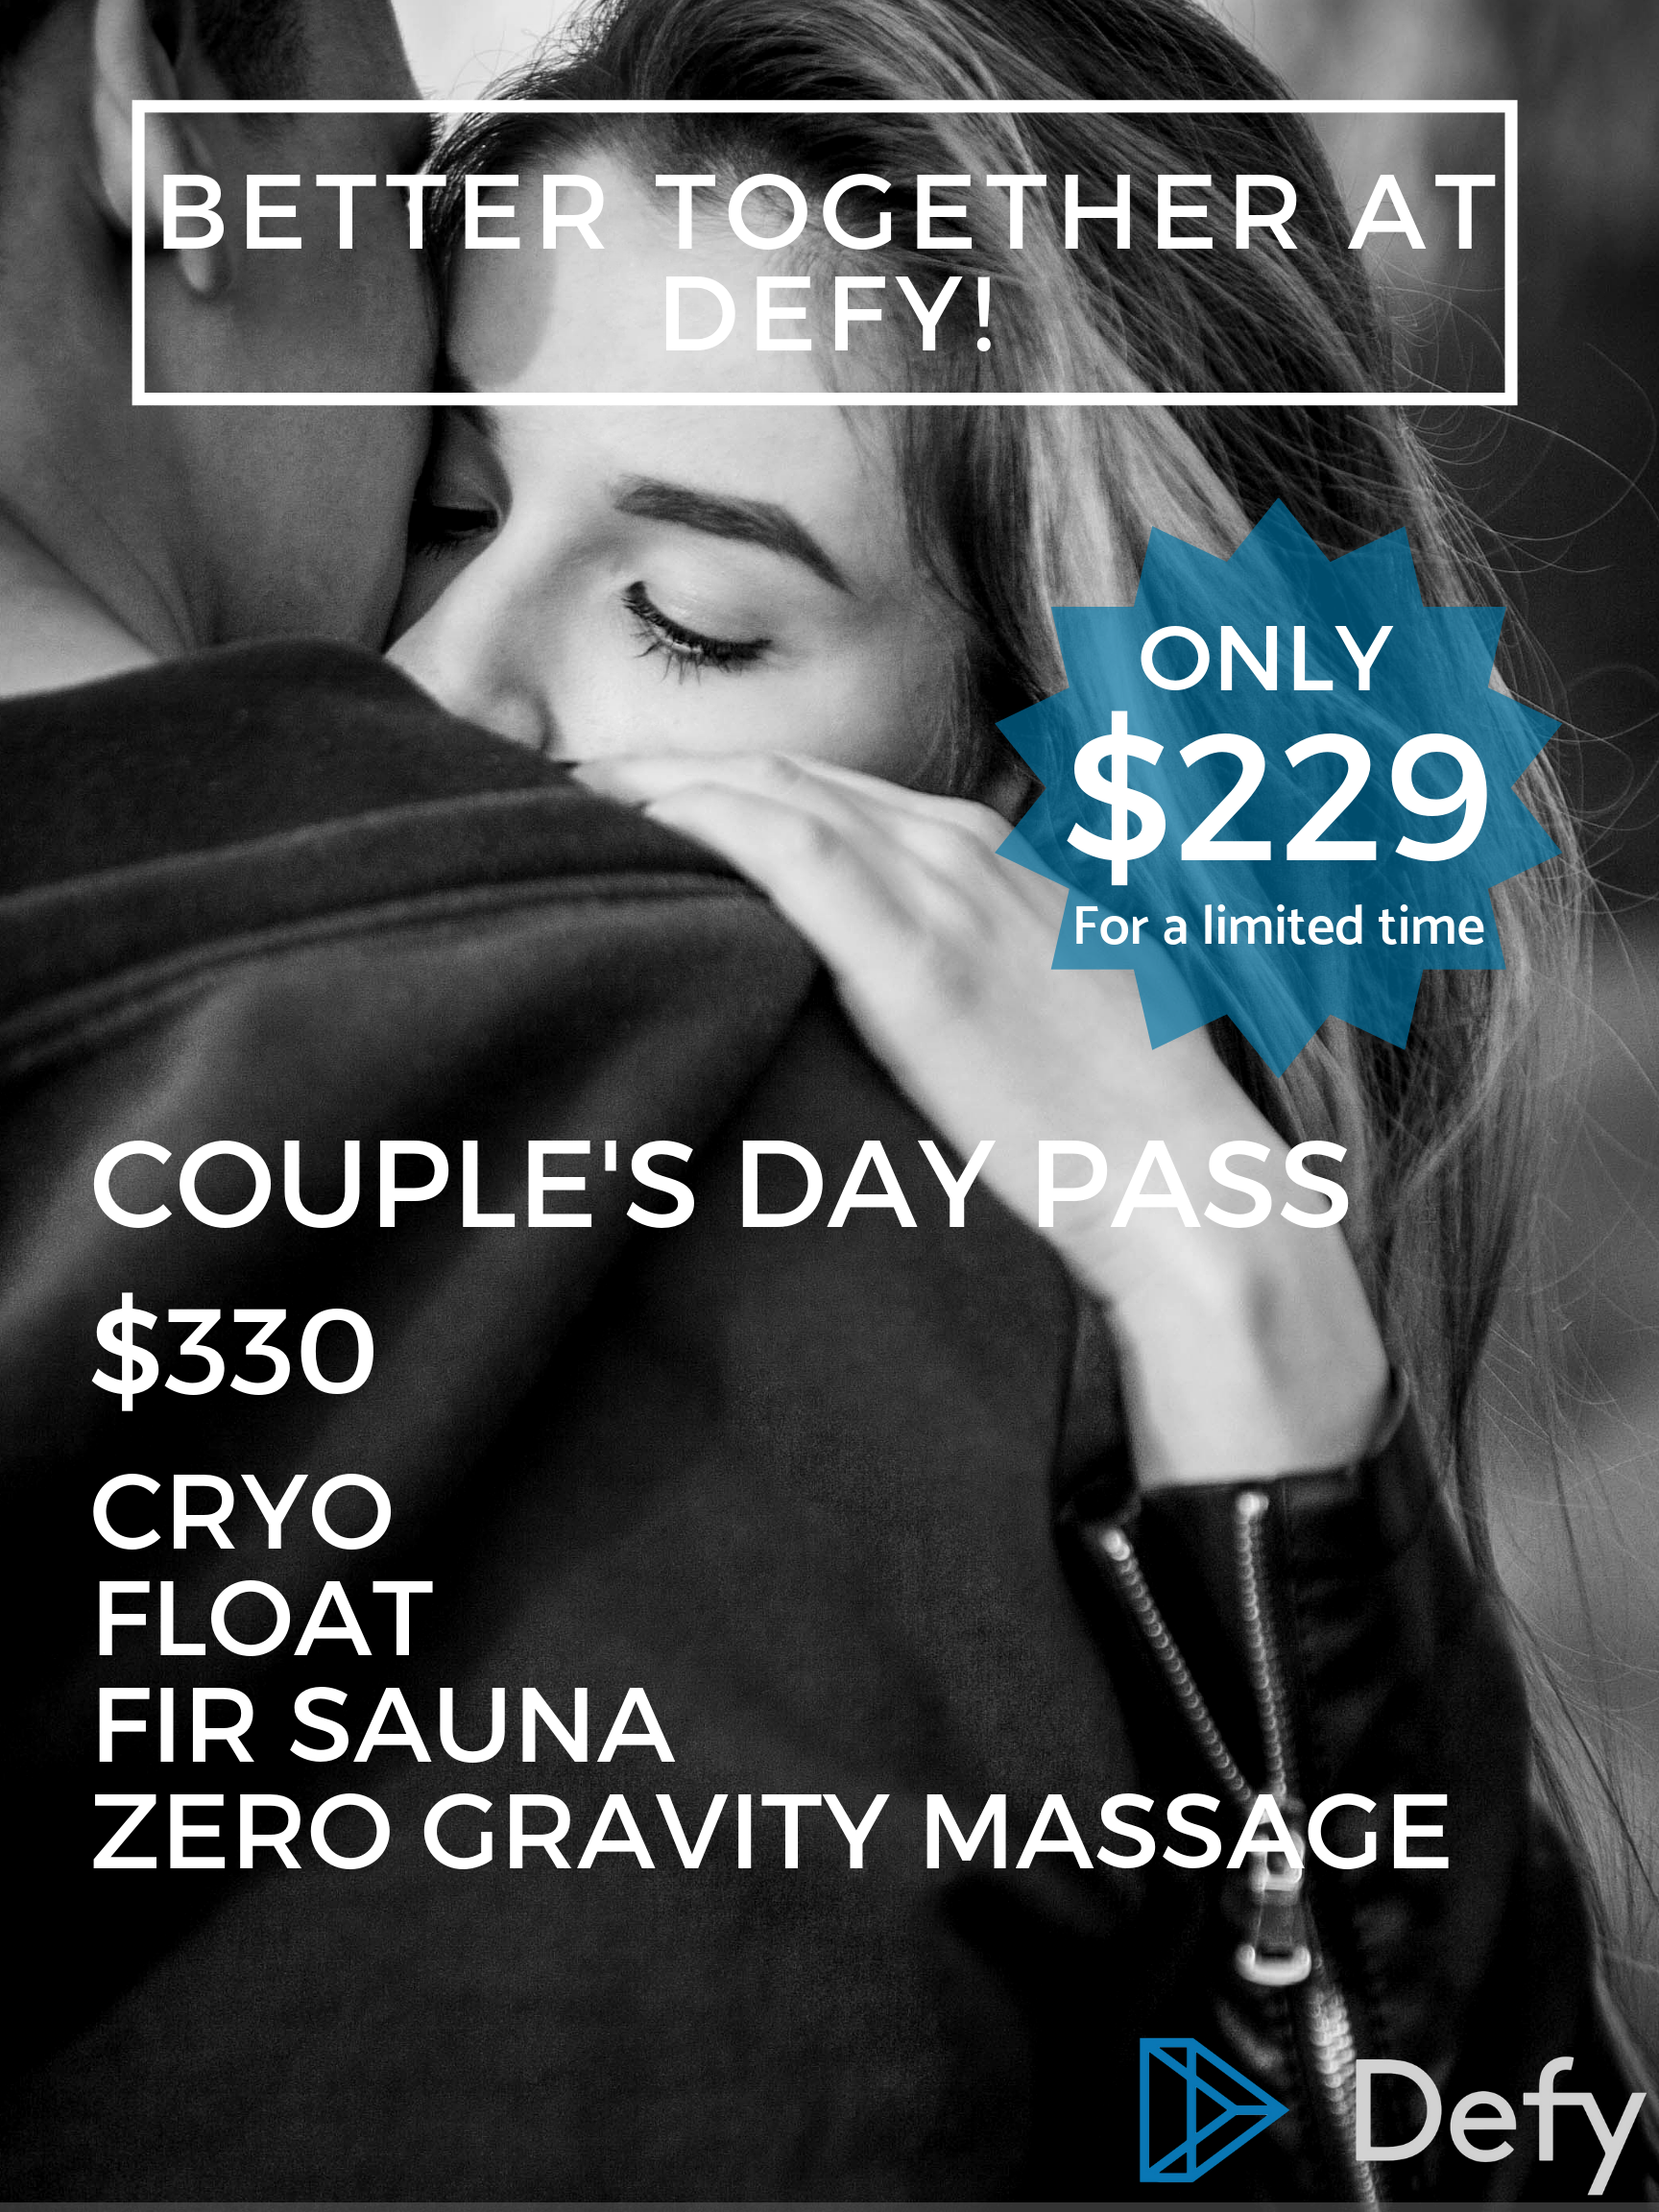 Couples Day Pass Website $229 offer.png